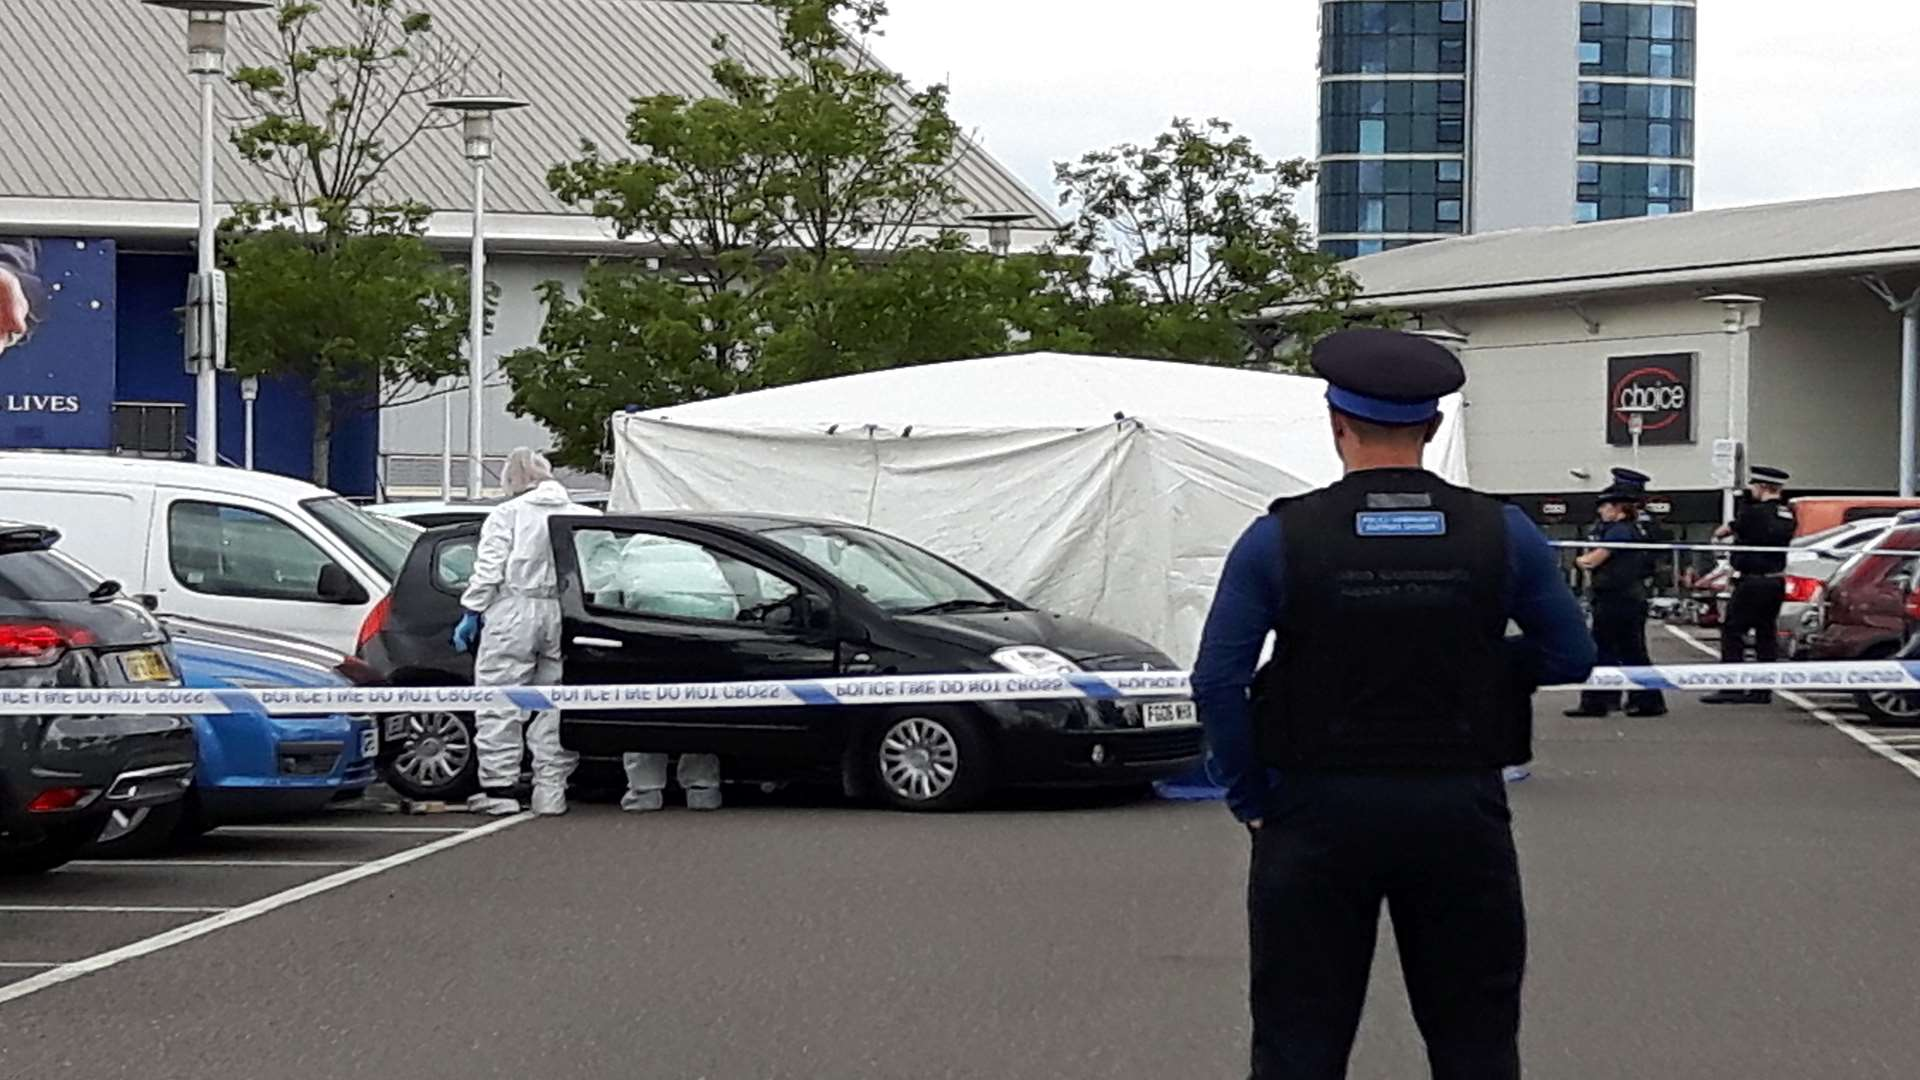 Molly McLaren died in the car park of the Dockside Shopping Outlet in Chatham